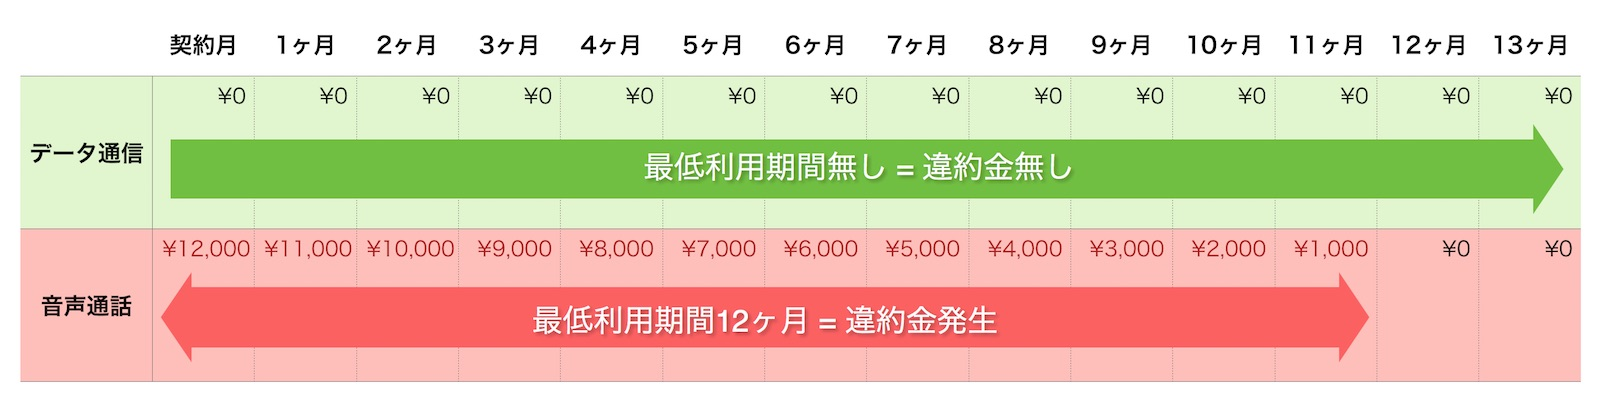 nuroモバイル 最低利用期間と契約解除料